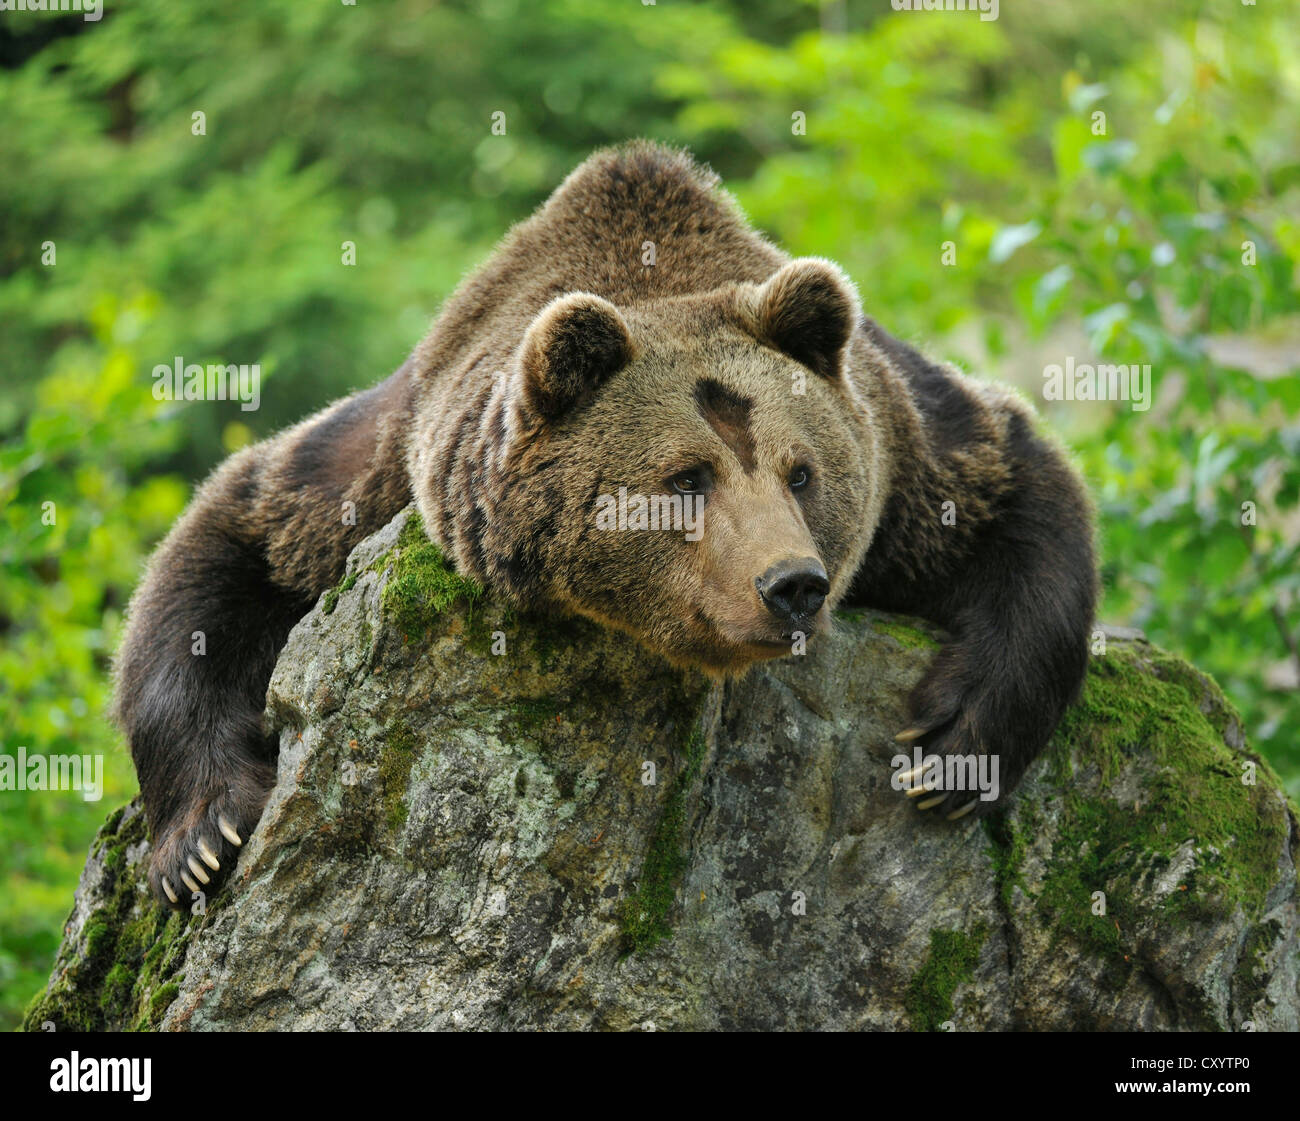 European Brown Bear (Ursus arctos) in an enclosed zone of the Bavarian Forest National Park, Bavaria - Stock Image